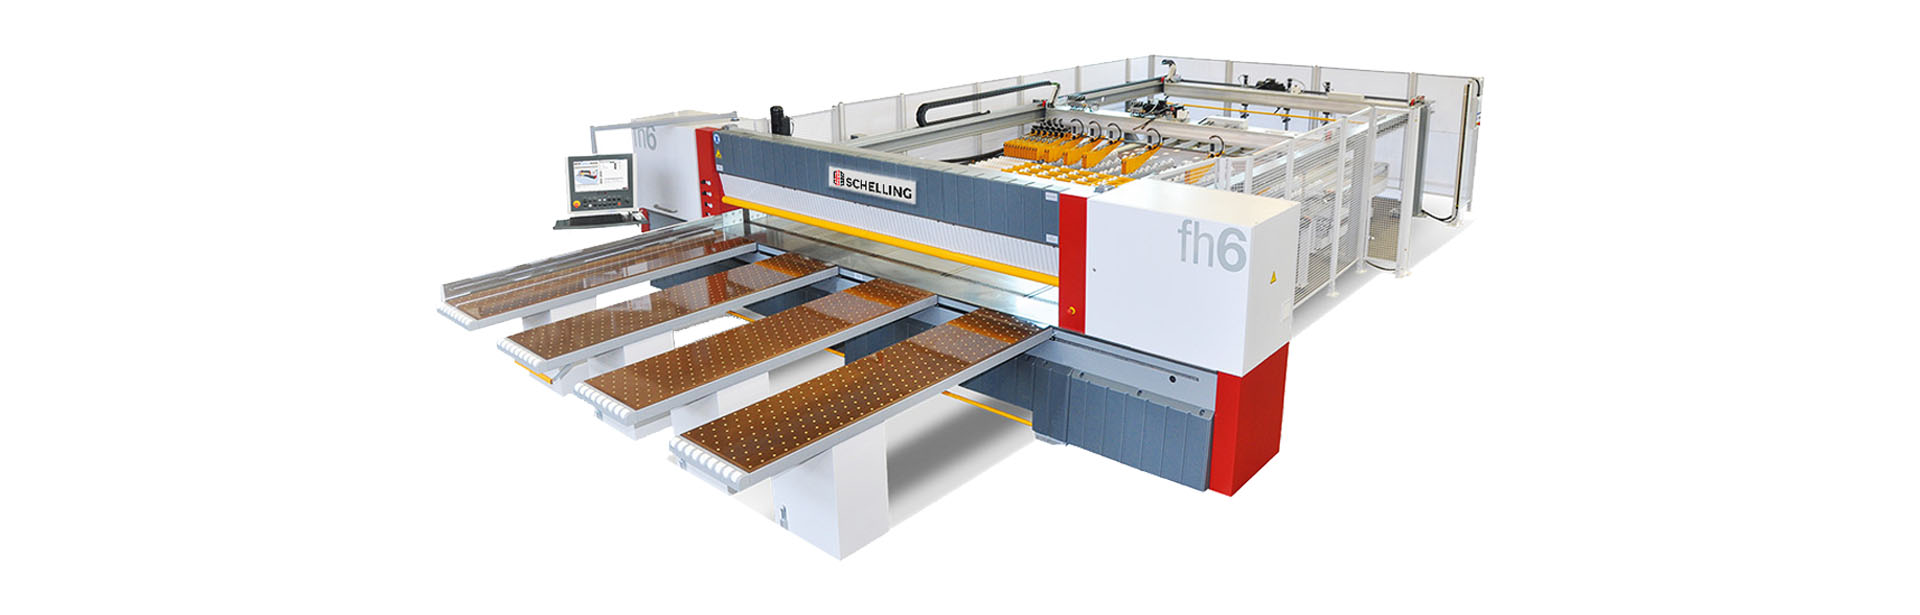 Panel Saws, Industrial Strength Panel Processing, Schelling fh6